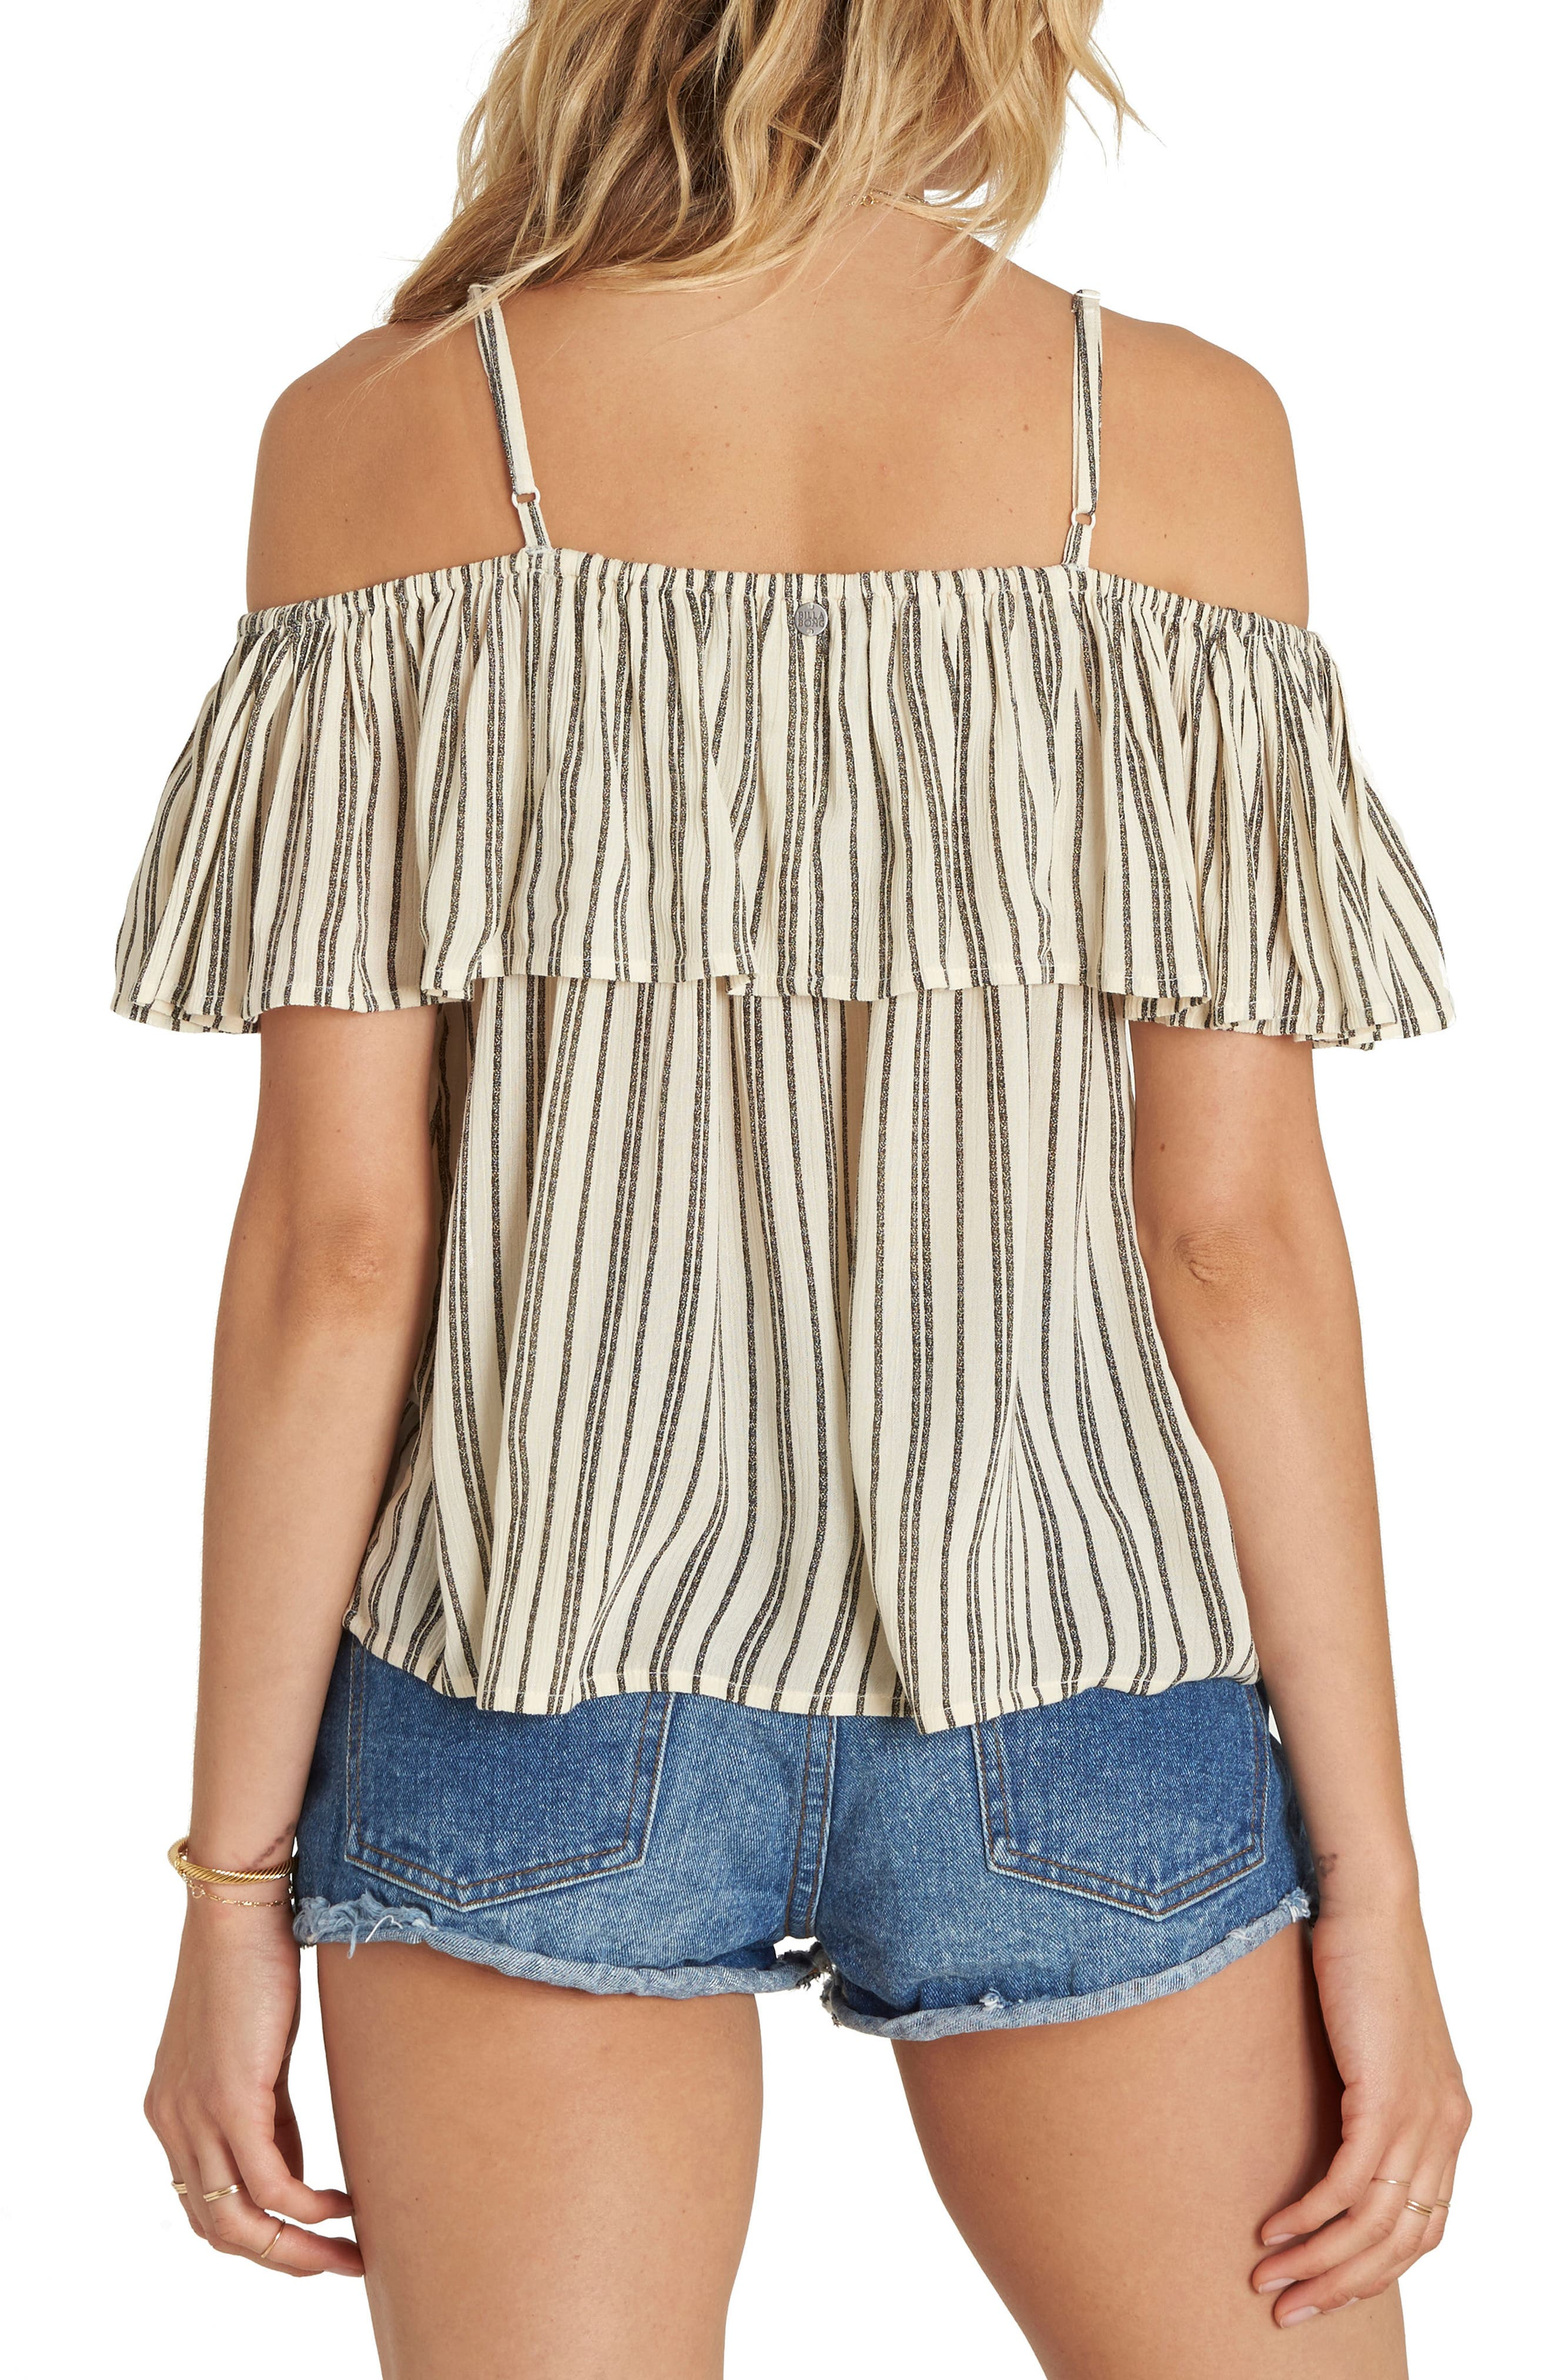 Summer Sunsets Ruffle Off the Shoulder Top,                             Alternate thumbnail 2, color,                             White Cap